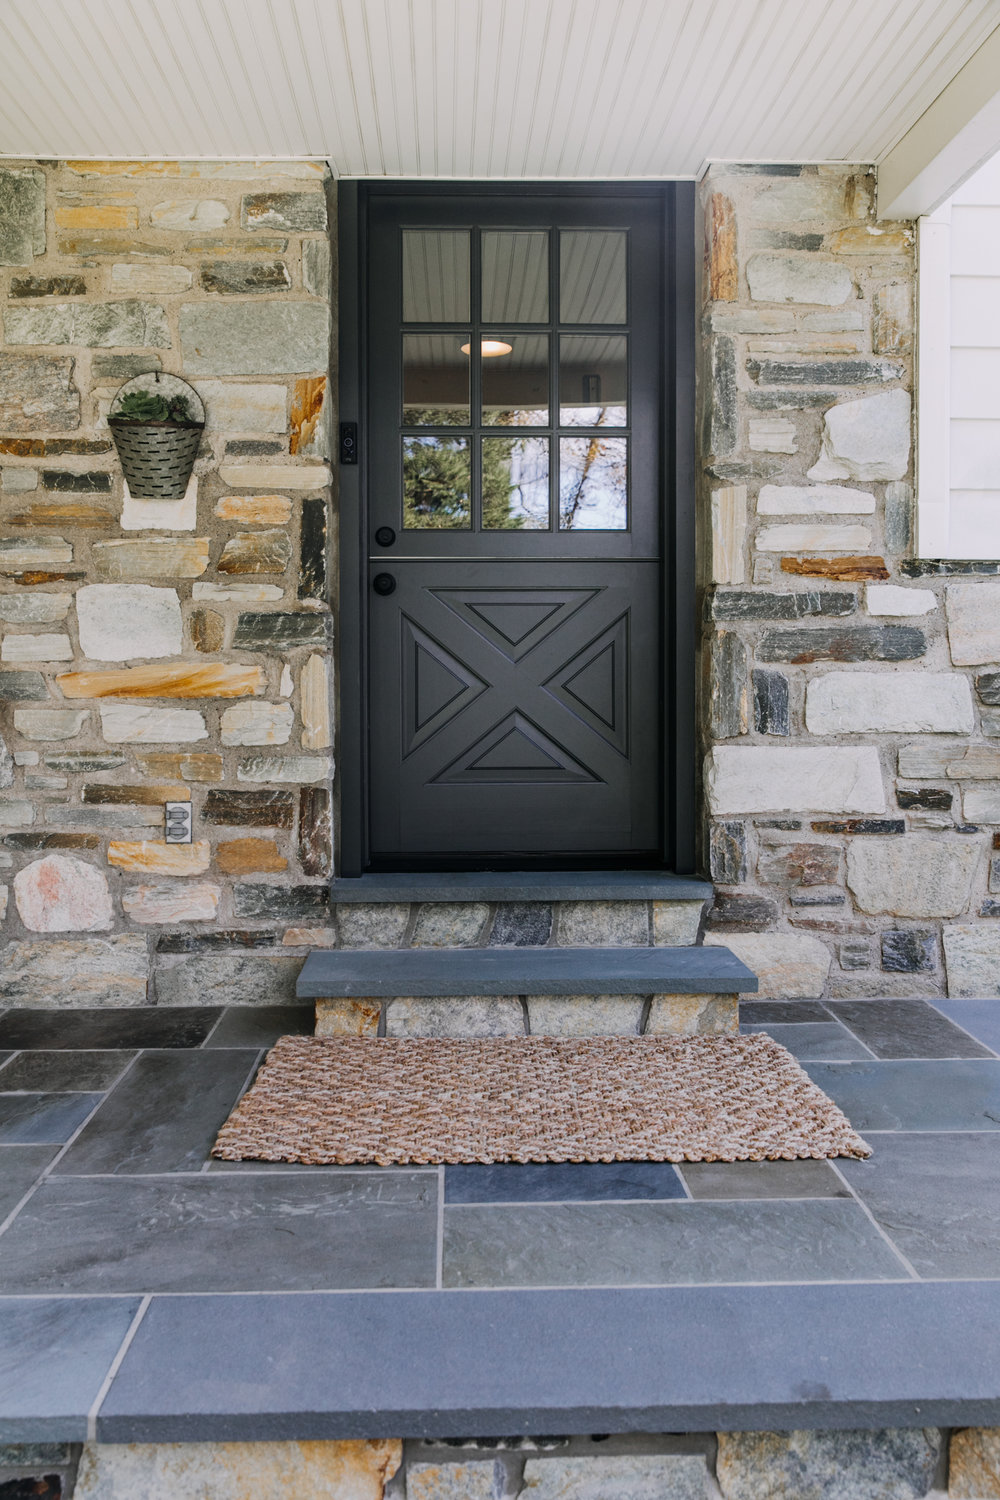 Fast forward to October! We ordered a dutch door from   Niece Lumber   .  We then painted the door to match the shutters and had it installed by our friend Tim at   New Hope Remodeling   .  Mike also updated the front door steps with the same stone from the house and with matching flagstone from the porch.